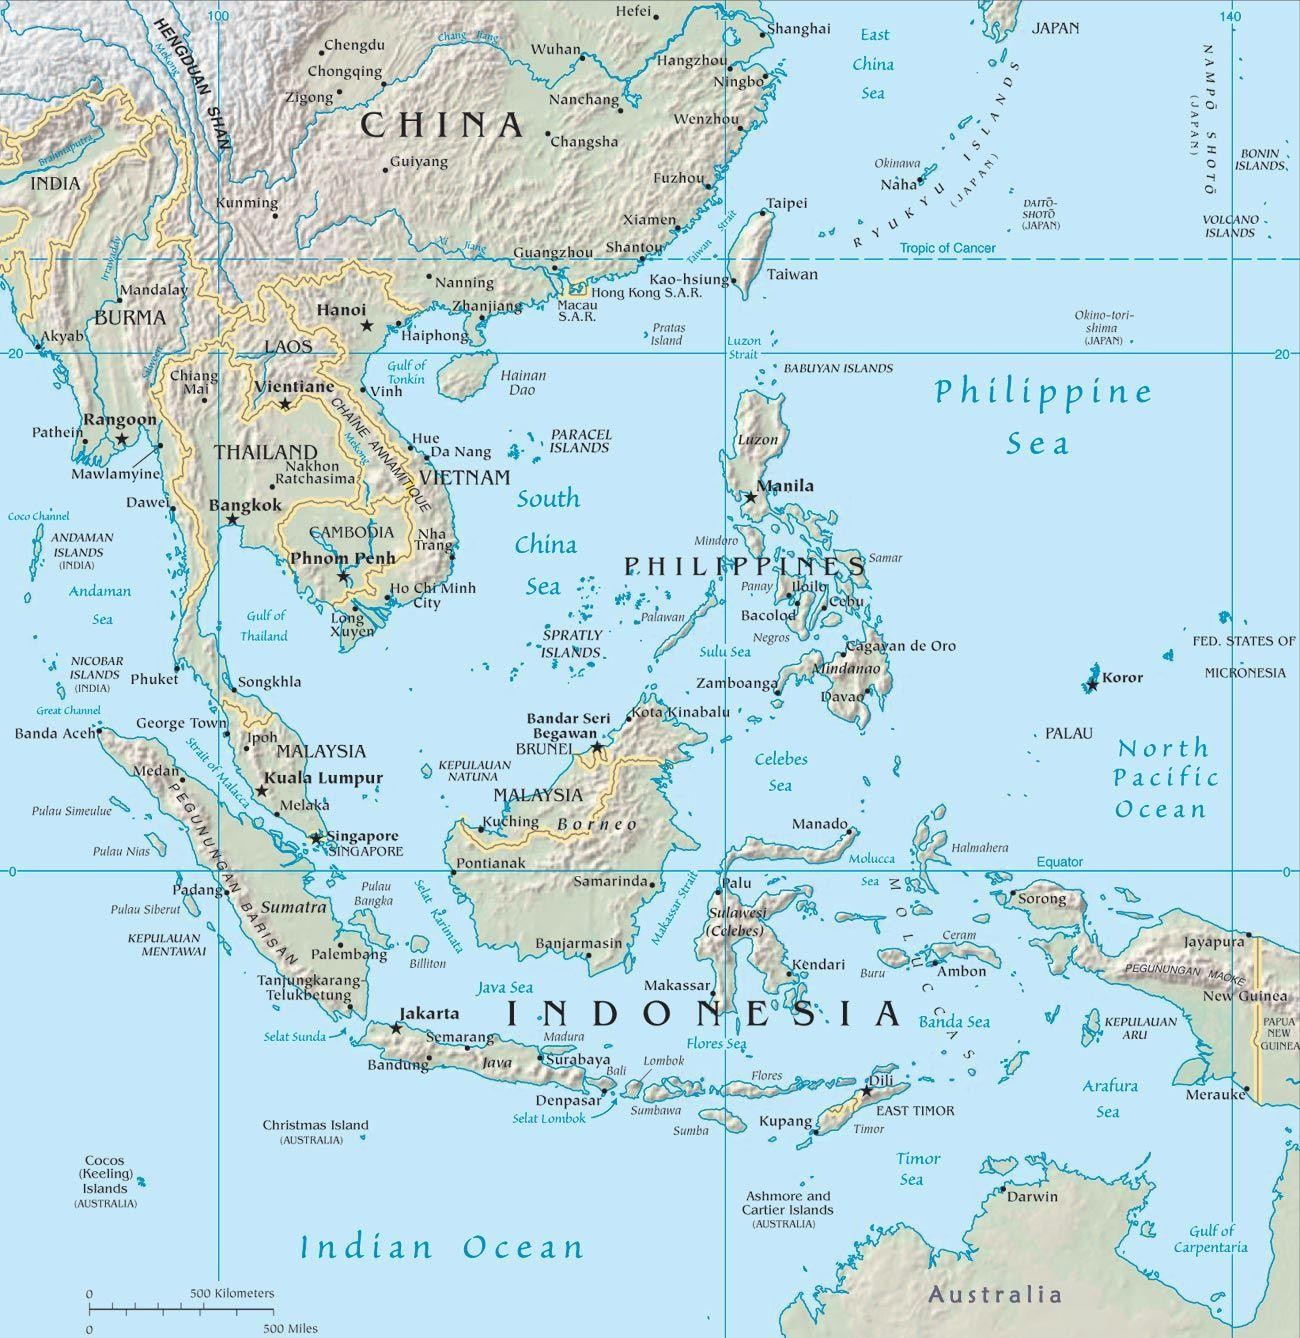 Map Of Asia Malaysia.Malaysia Map Asia Map Of Malaysia In Asia South Eastern Asia Asia